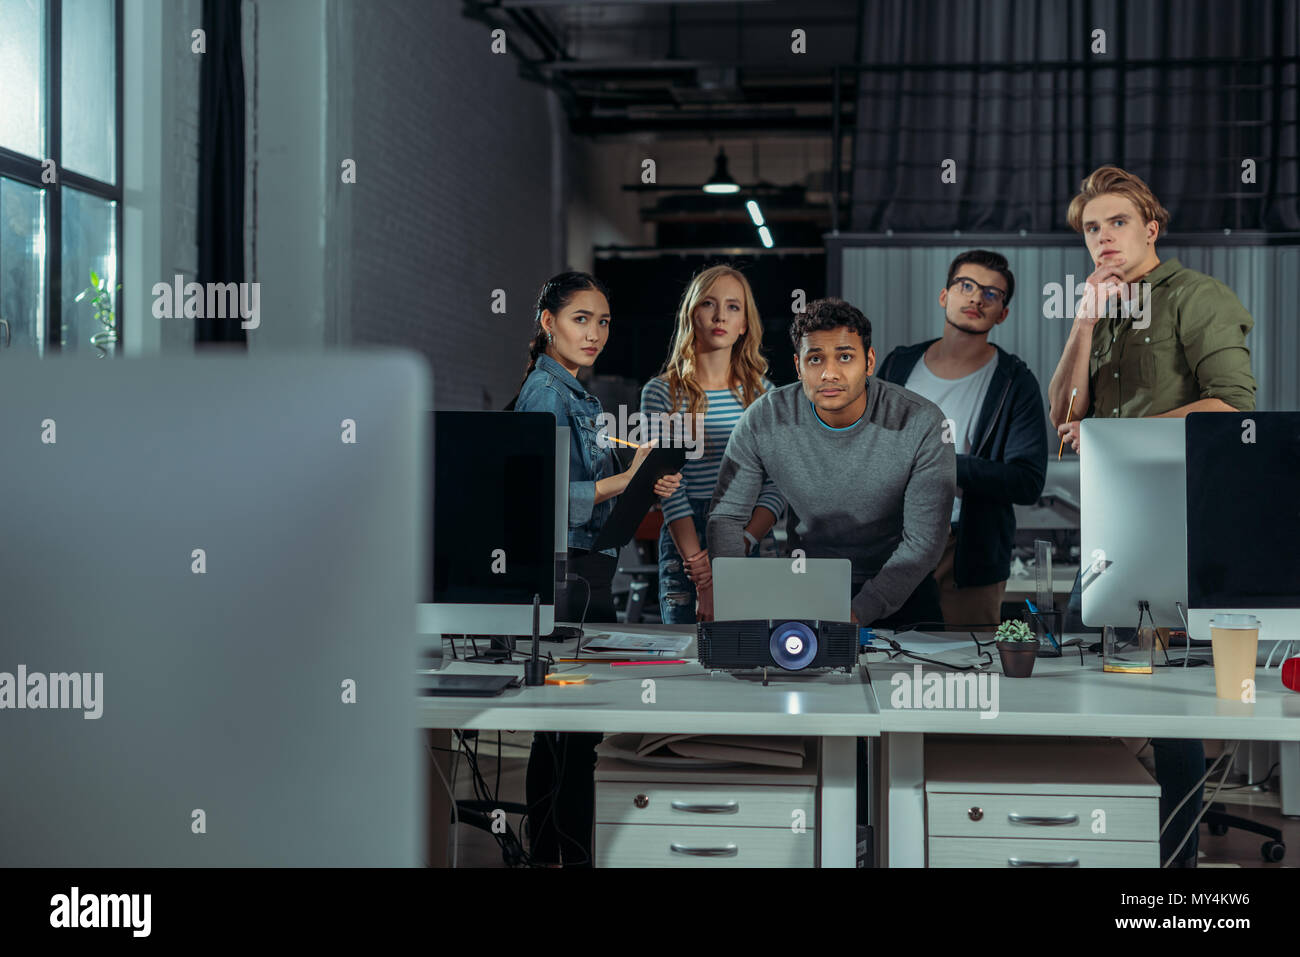 young people watching presentation in modern office at nighttime - Stock Image